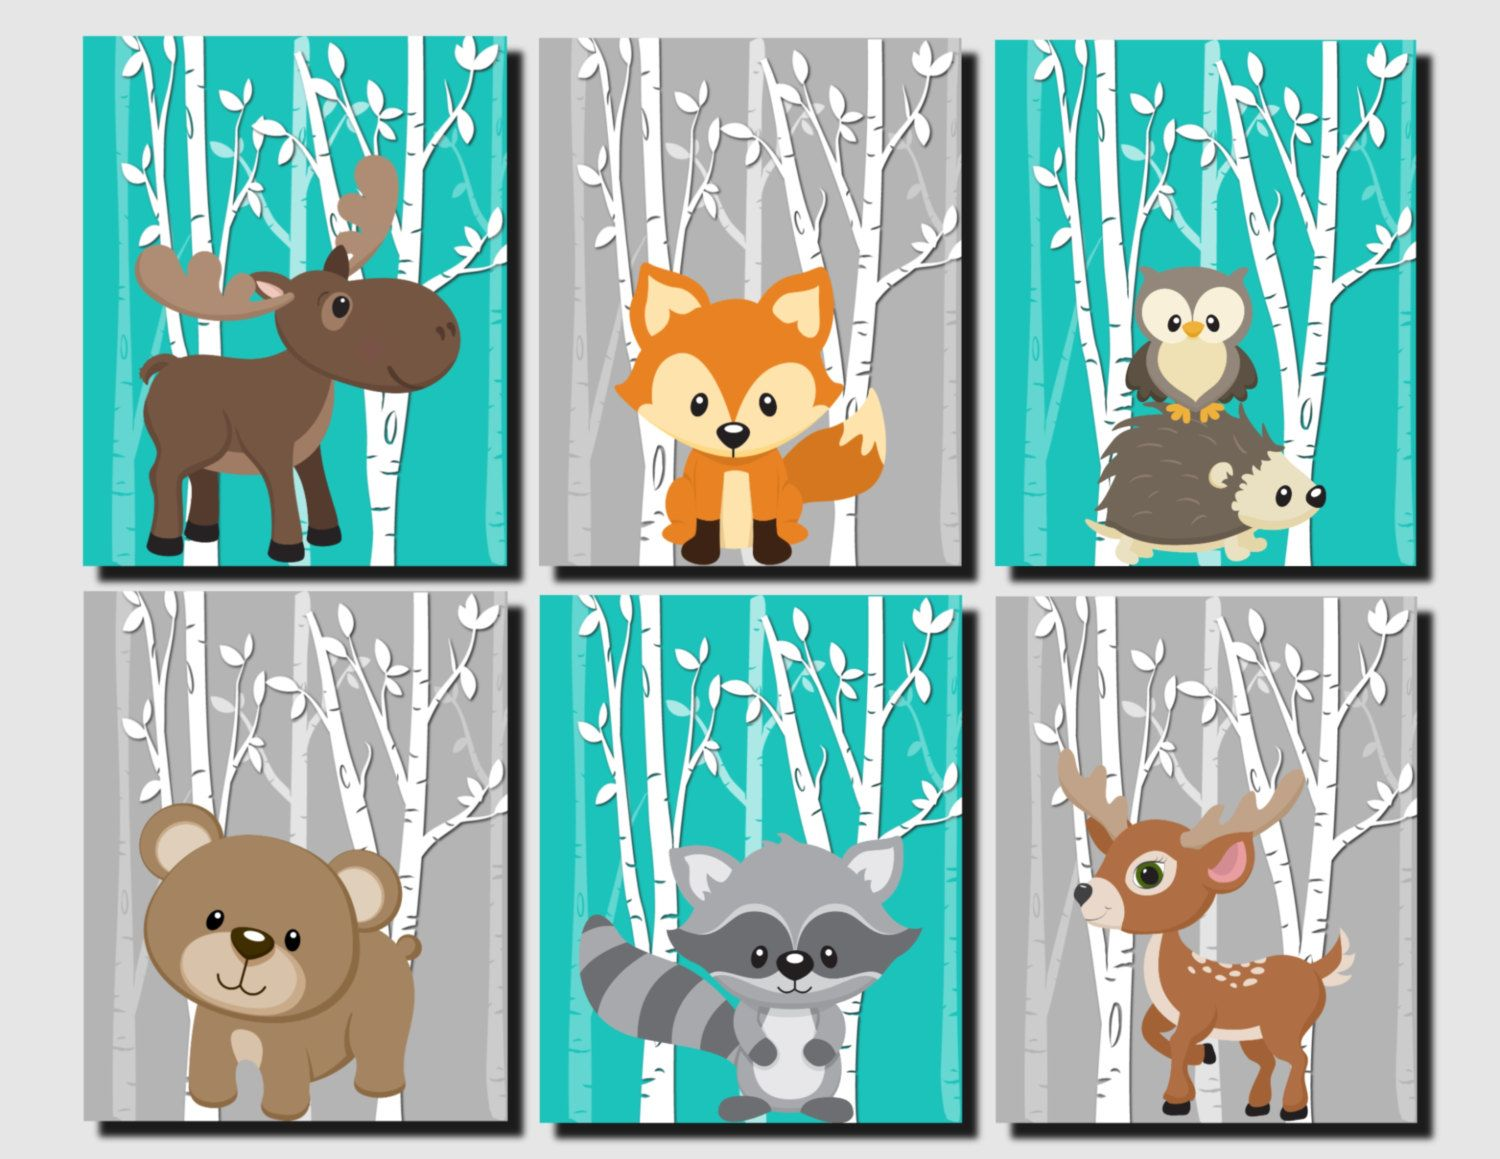 Woodland Nursery, Woodland Wall Decor Kids, Teal, Gray, Forest Animals Wall  Art, Kids Wall Art, Fox, Deer, Moose, Set Of 6 Prints Or Canvas By  Vtdesigns On ...